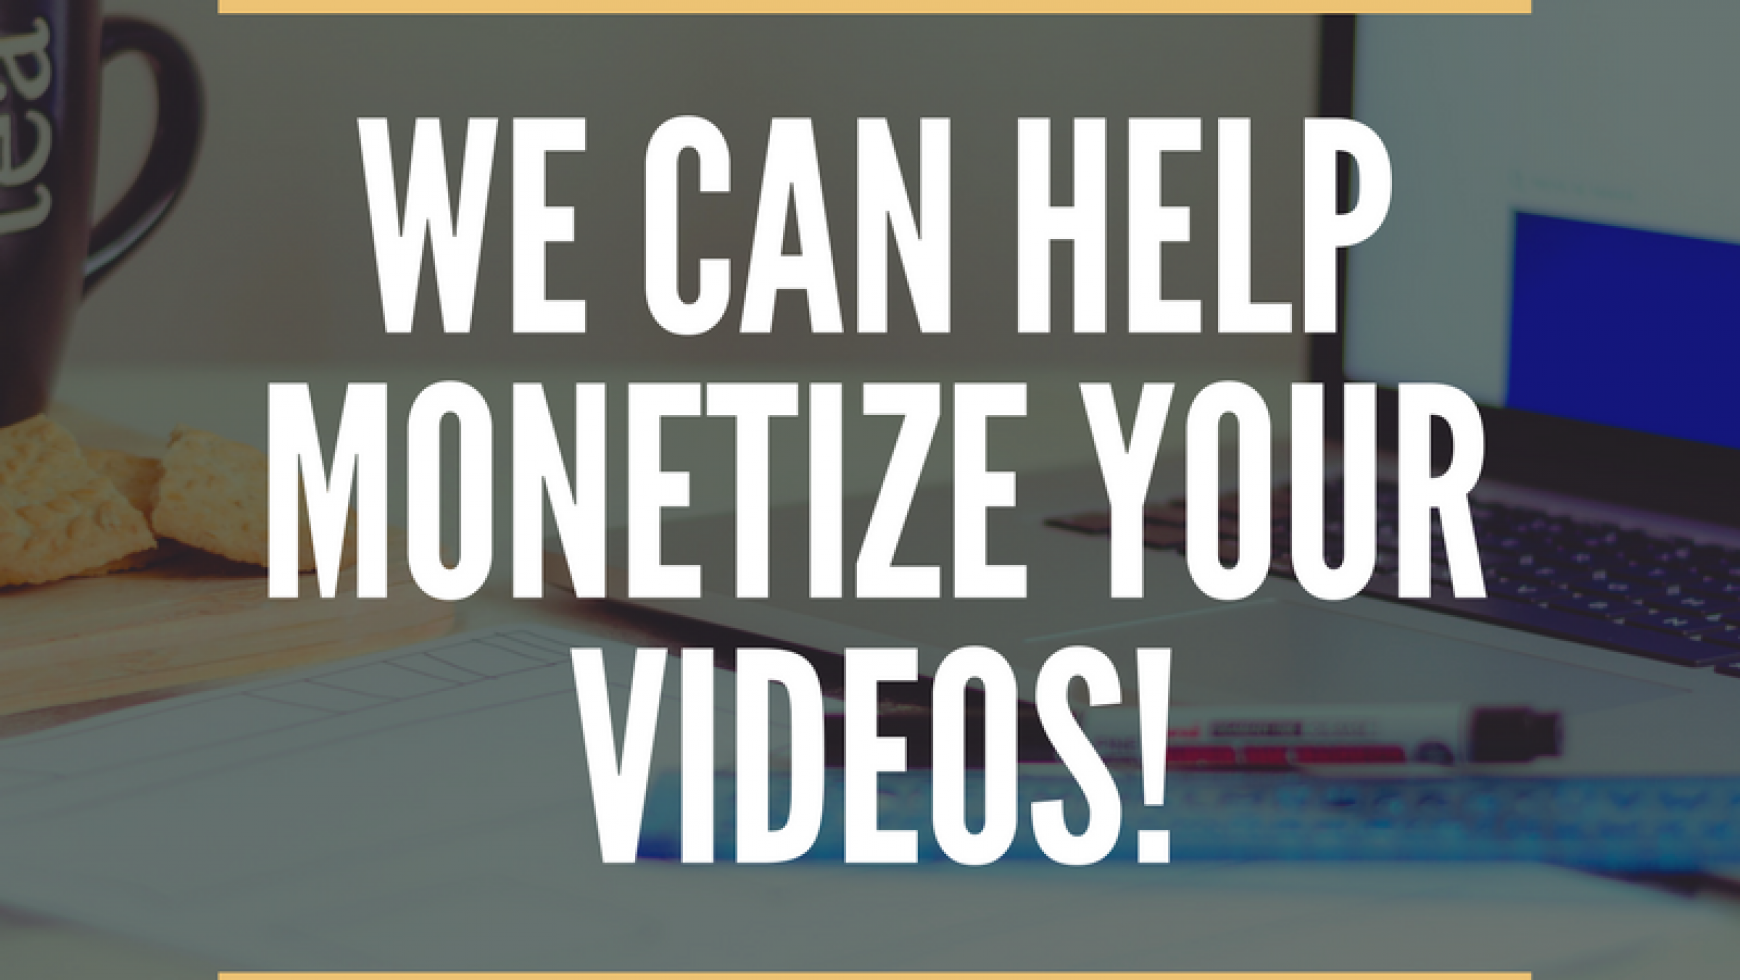 YouTube Monetization Changes, And How We Can Help You!